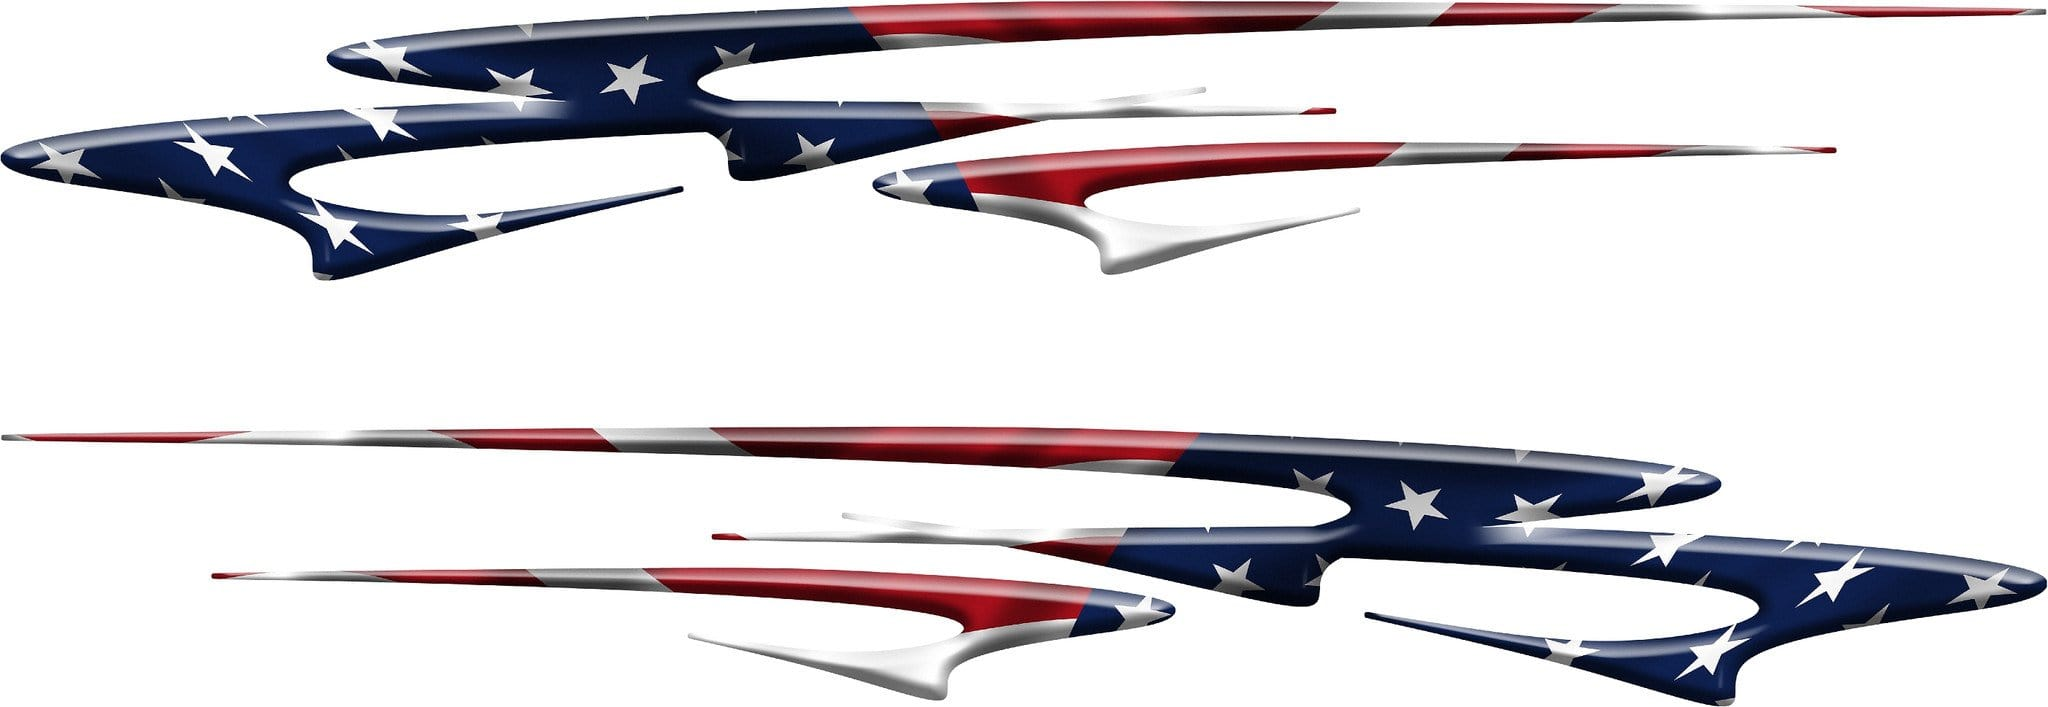 Anime Gun Girl Car Truck Semi Vinyl Decal Graphics additionally Tribal 1 Side Full Lime Green in addition Pdx wraps mastercraft ski boat wrap before after together with Car Truck Vinyl Decals American Flag Stripes Auto Graphics 4ft And Up B490 as well Numbersgeneral. on race trailer wraps